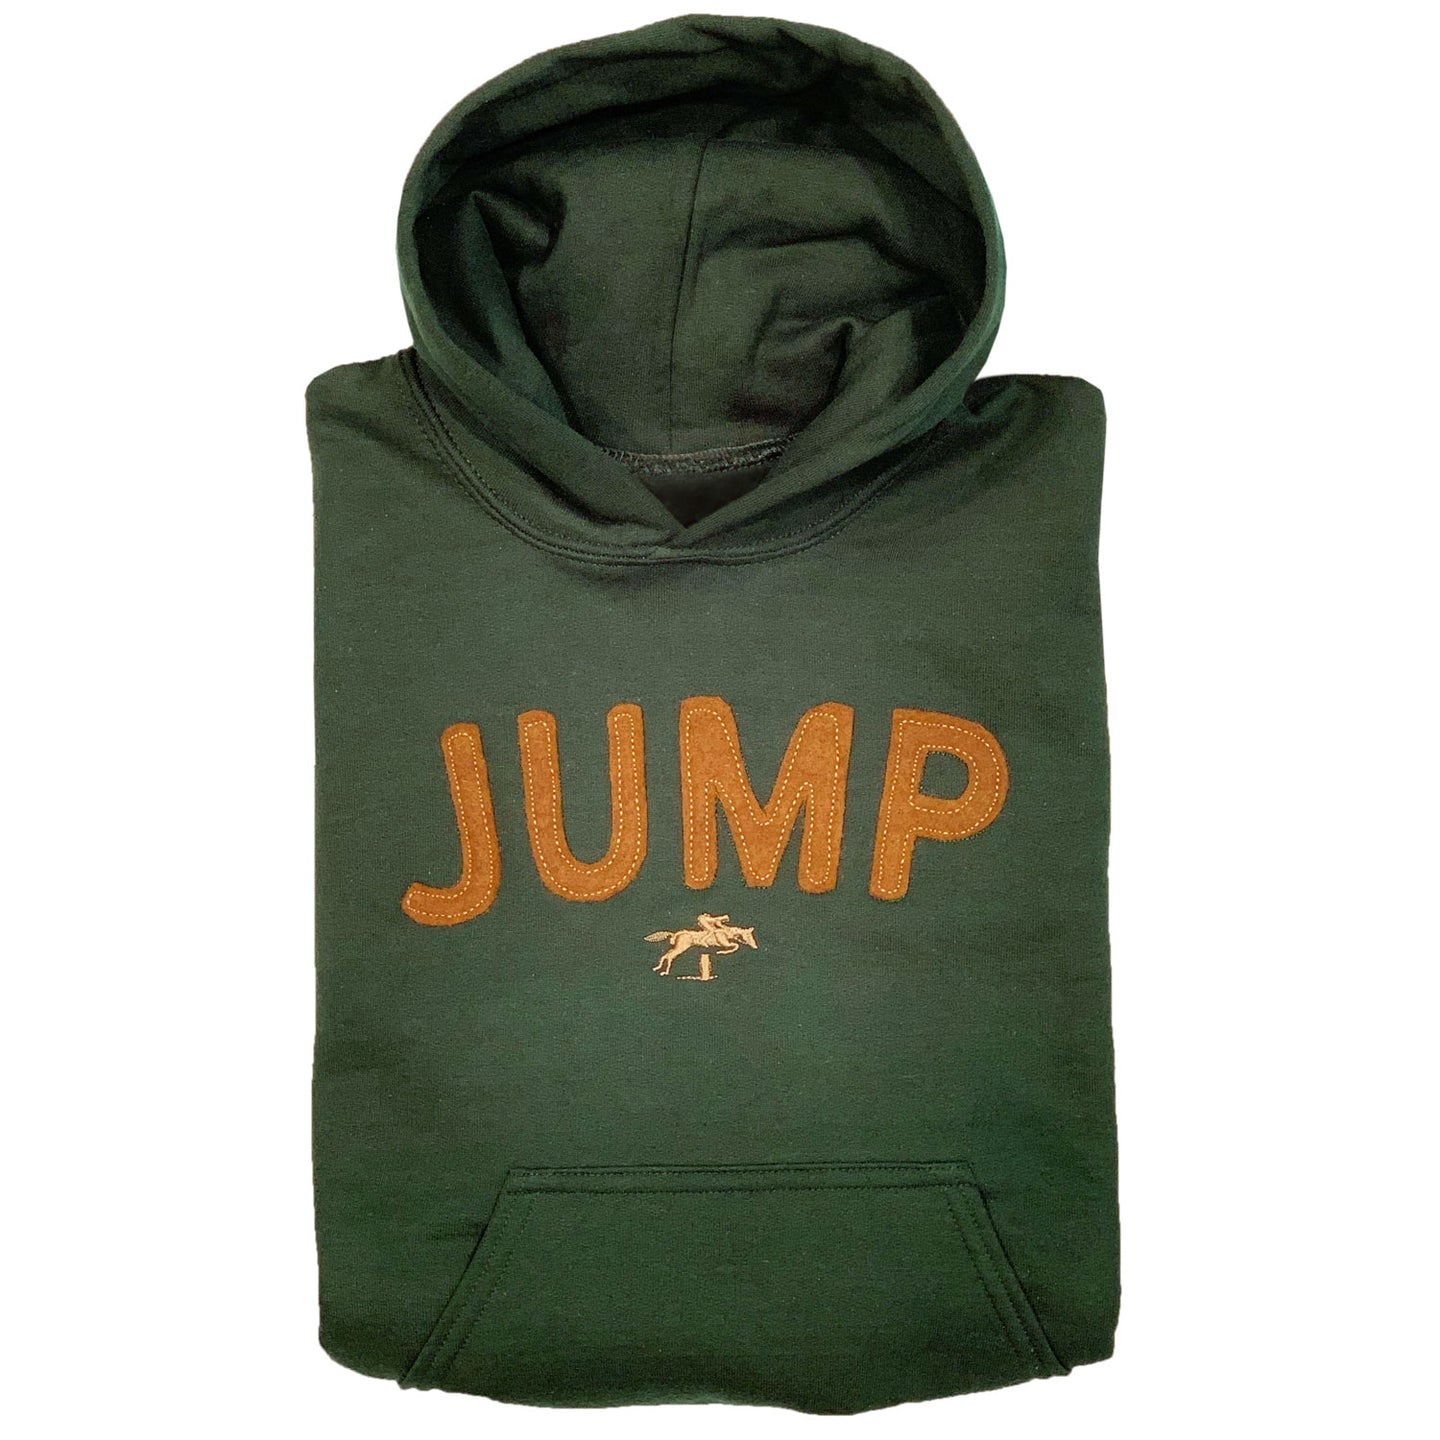 JUMP Embroidered Applique Youth Hoodie 19582